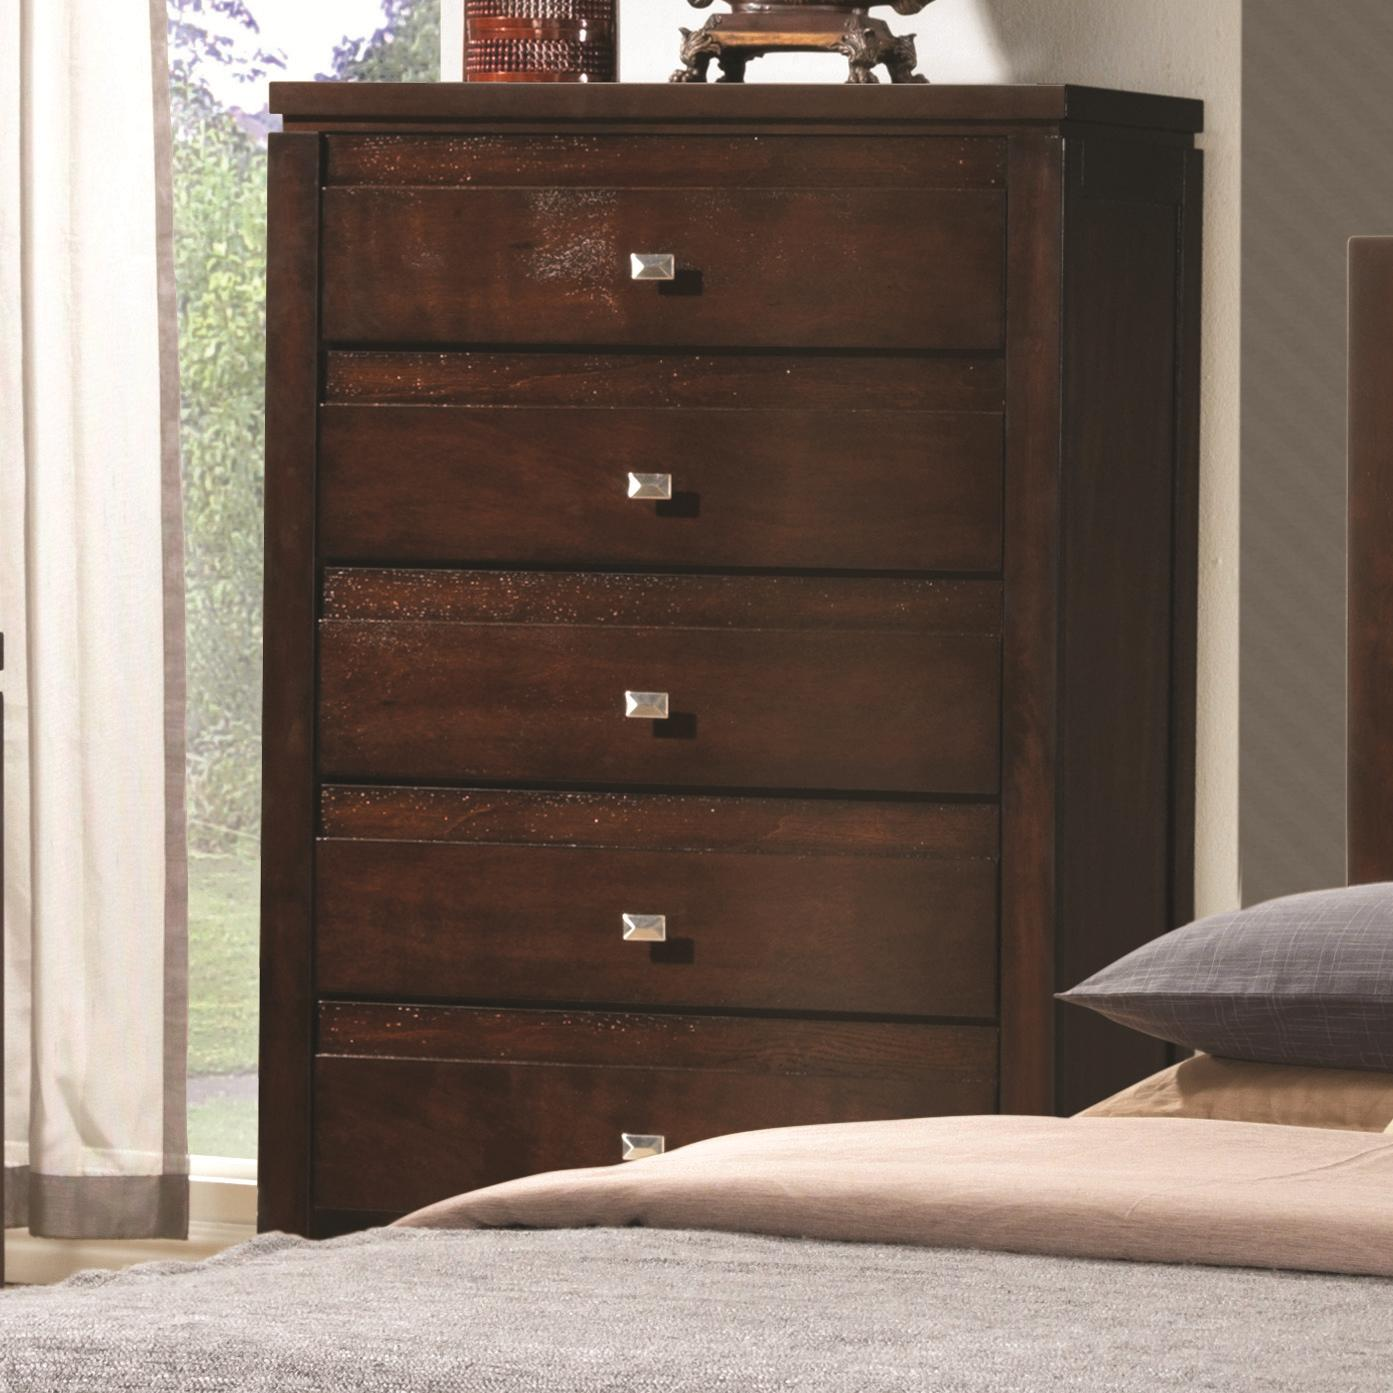 Coaster Cameron Chest of Drawers - Item Number: 203495